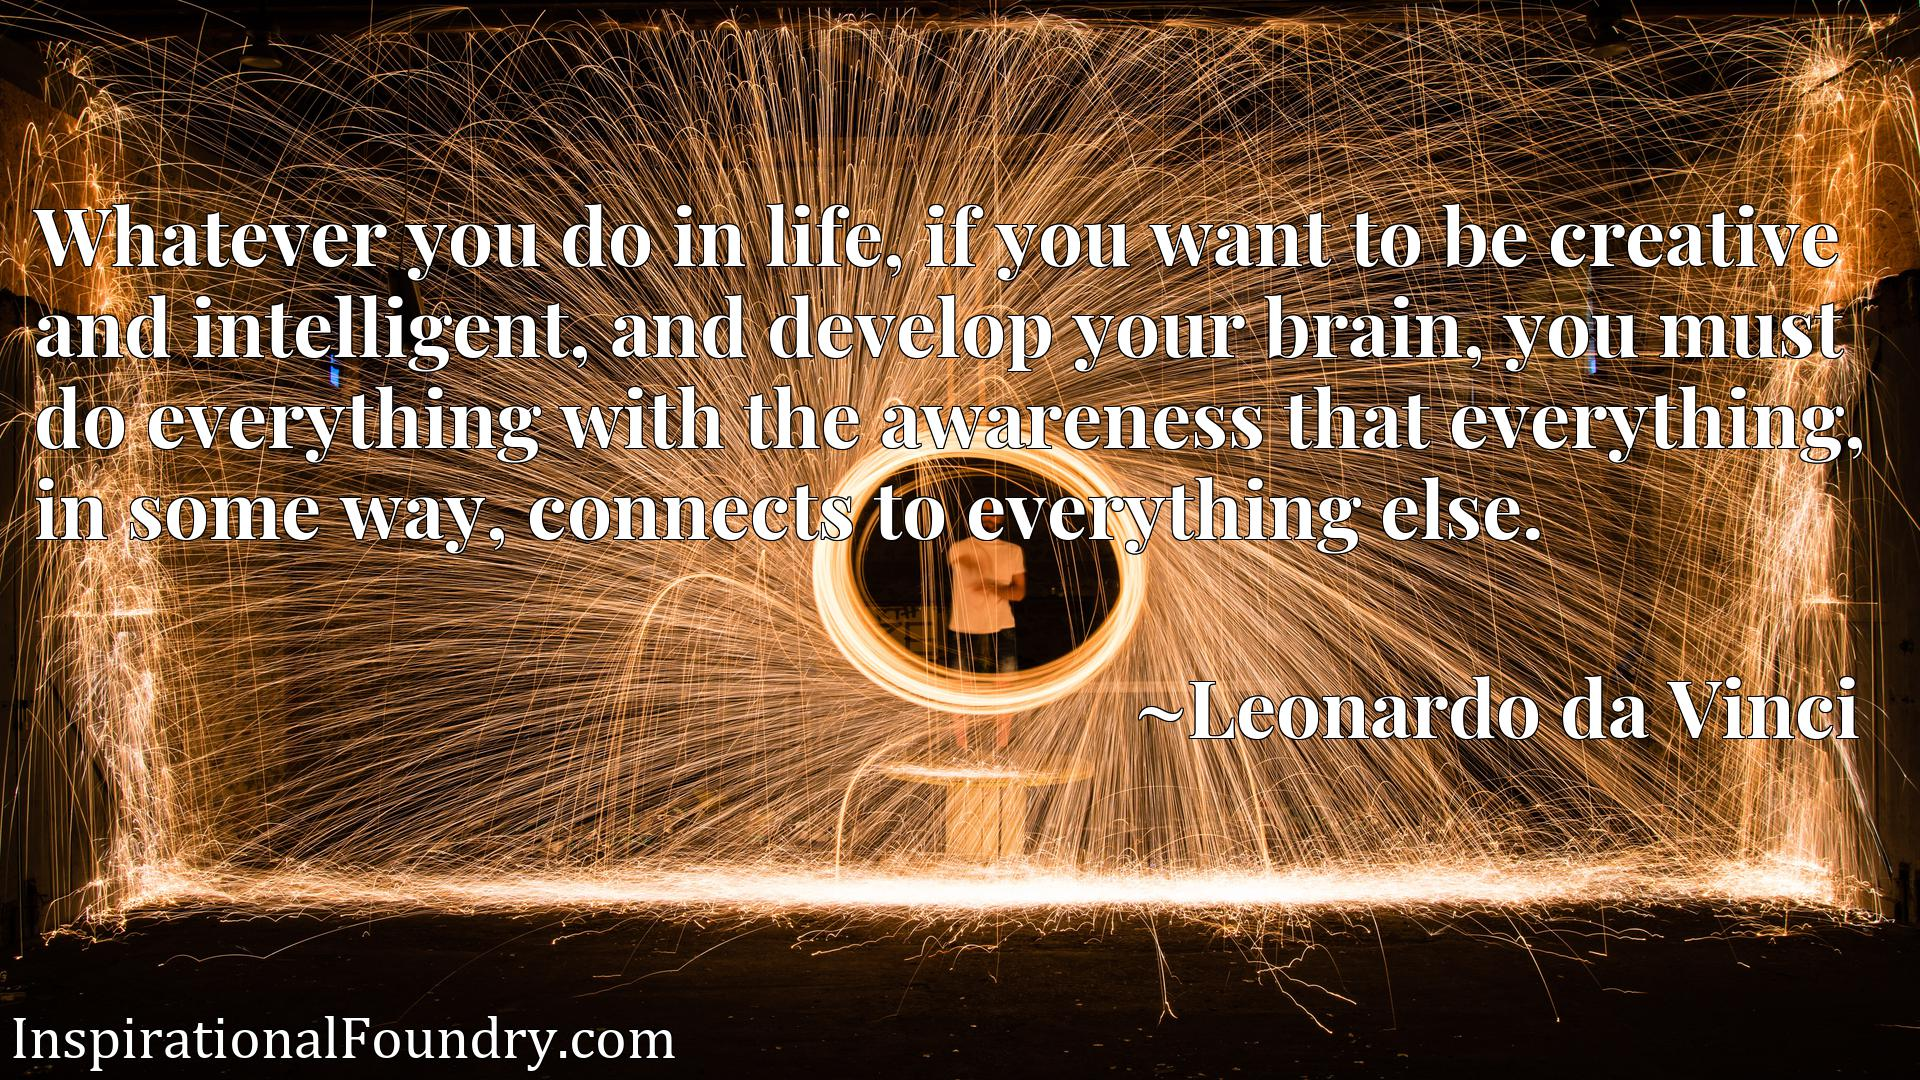 Whatever you do in life, if you want to be creative and intelligent, and develop your brain, you must do everything with the awareness that everything, in some way, connects to everything else.